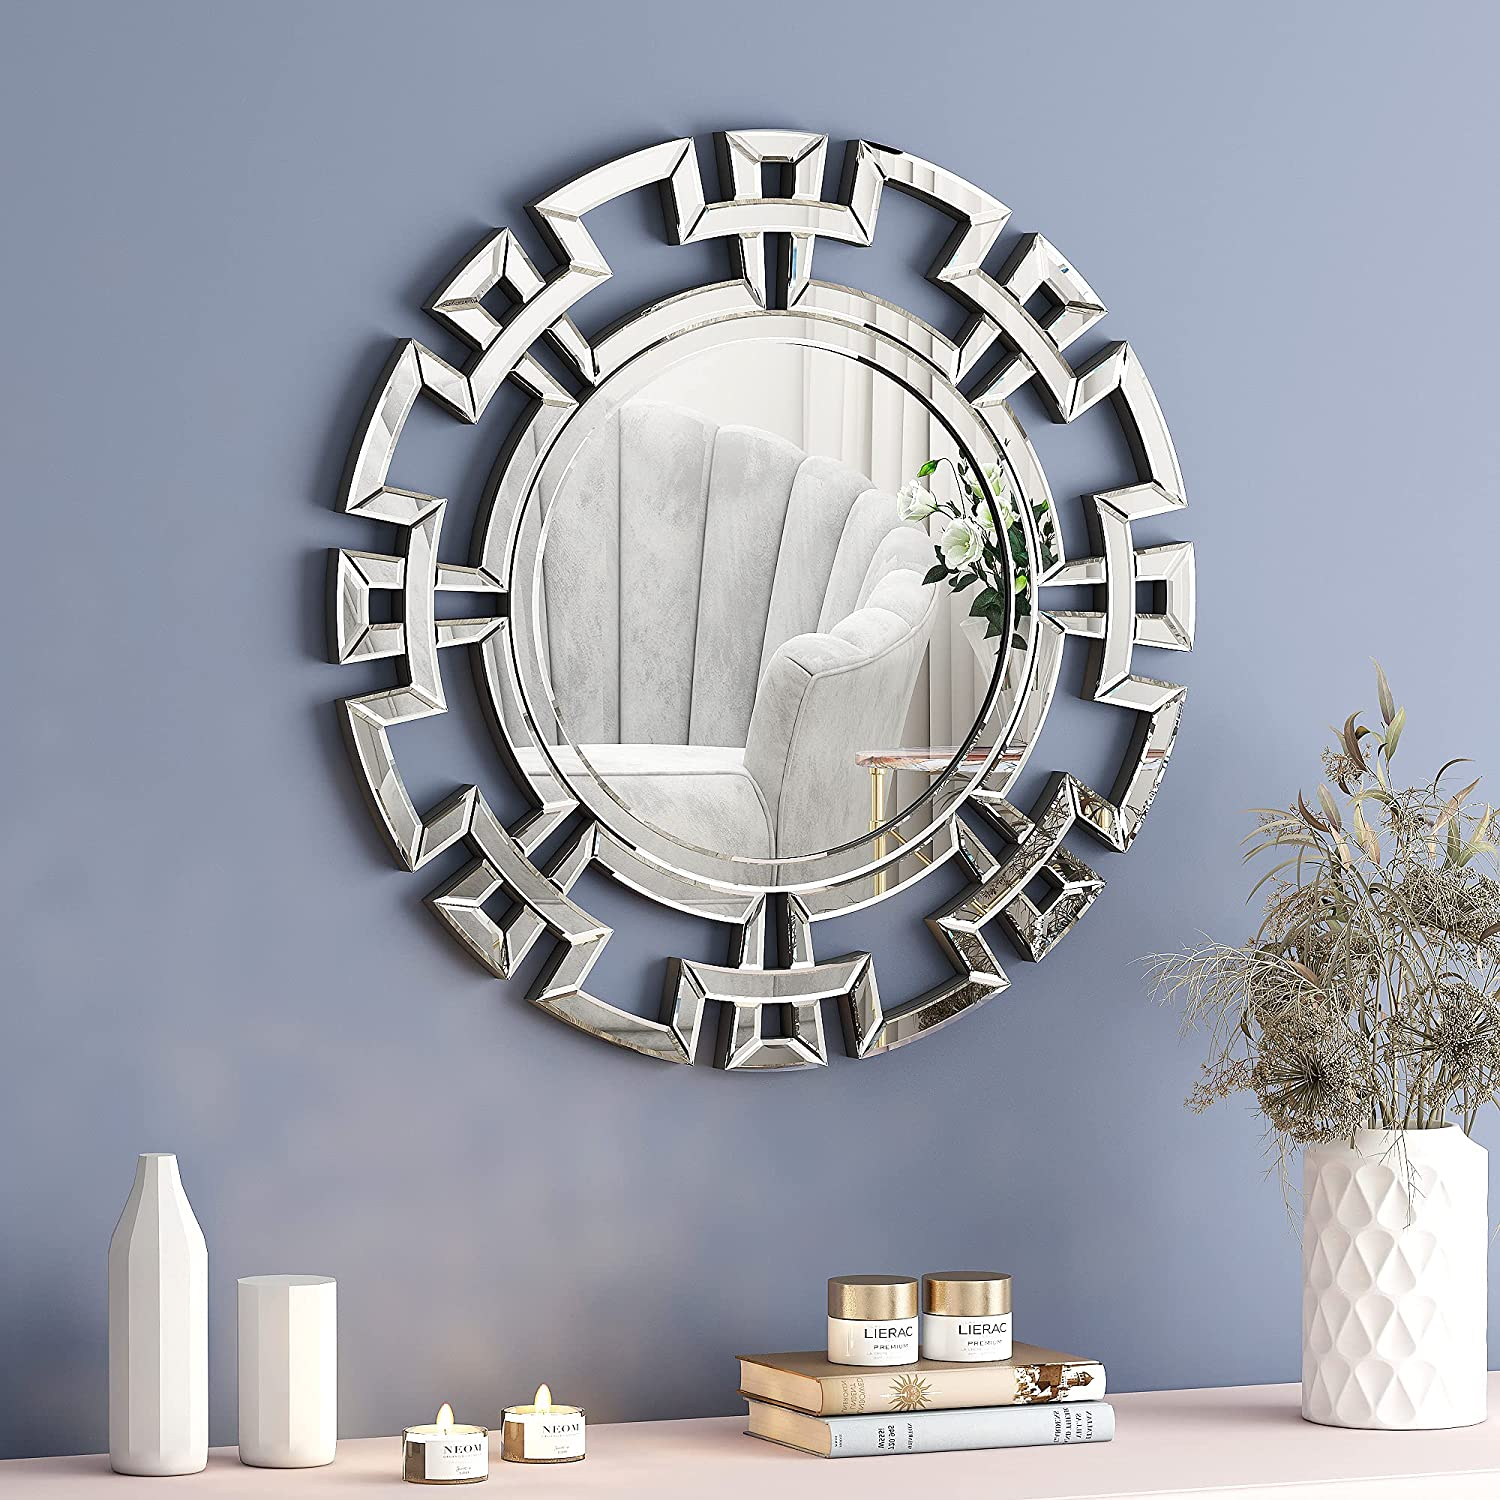 Decorative Mirrors for Wall Decor - SHYFOY Geometric Openwork Traditional Accent Mirror with Silver HD Glass, 31.5'' Silver Wall Mounted Decoration for Living Room Bedroom Fireplace Entry Hallway